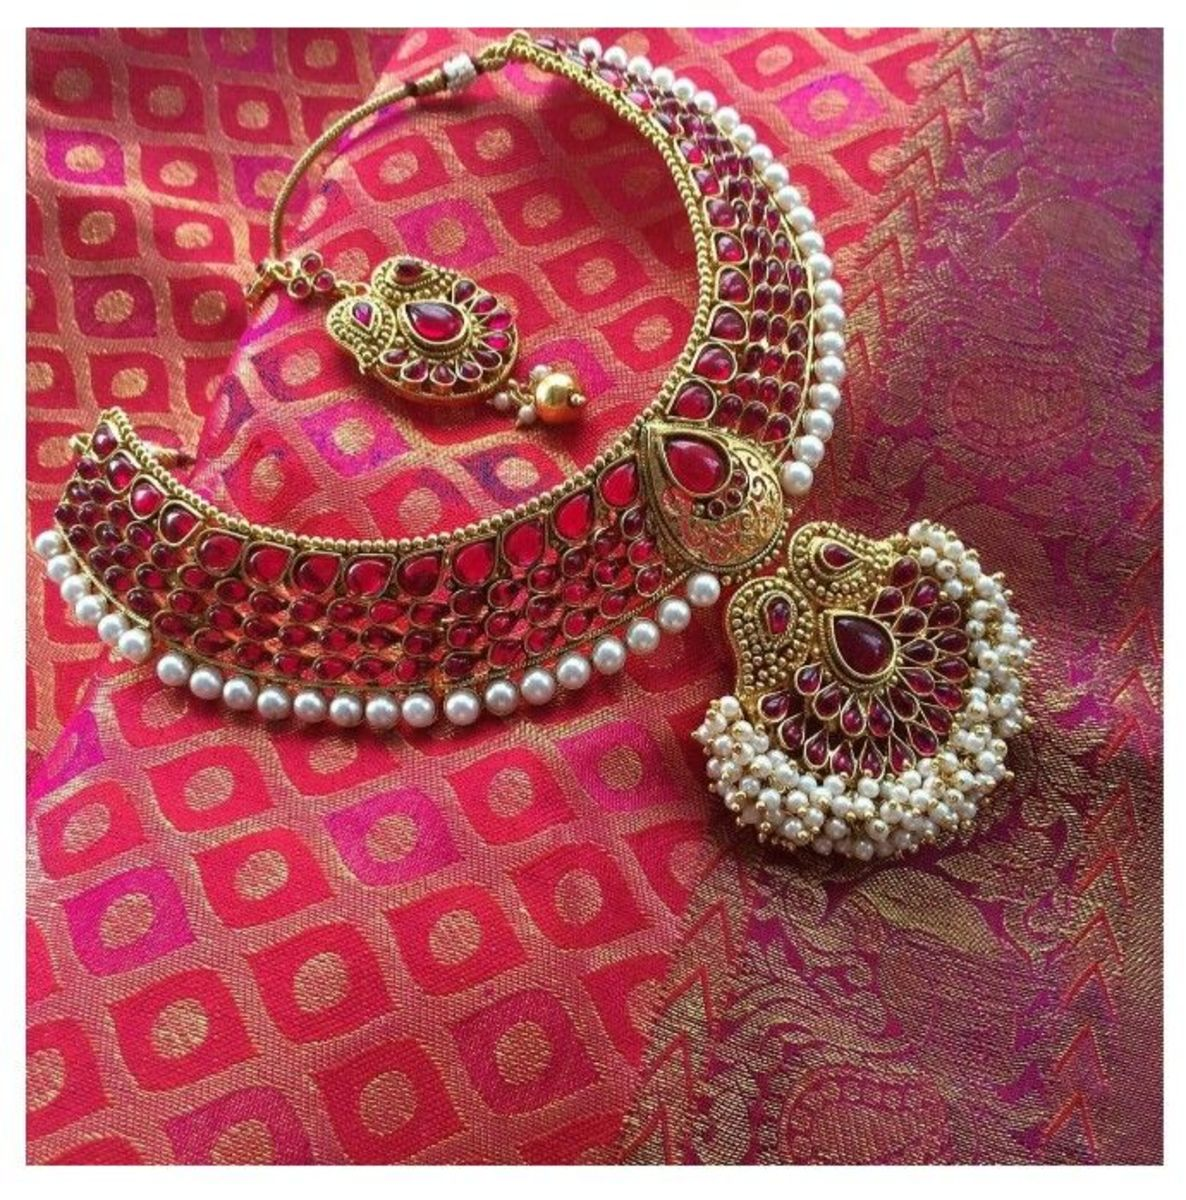 Red stone Indian wedding necklace design